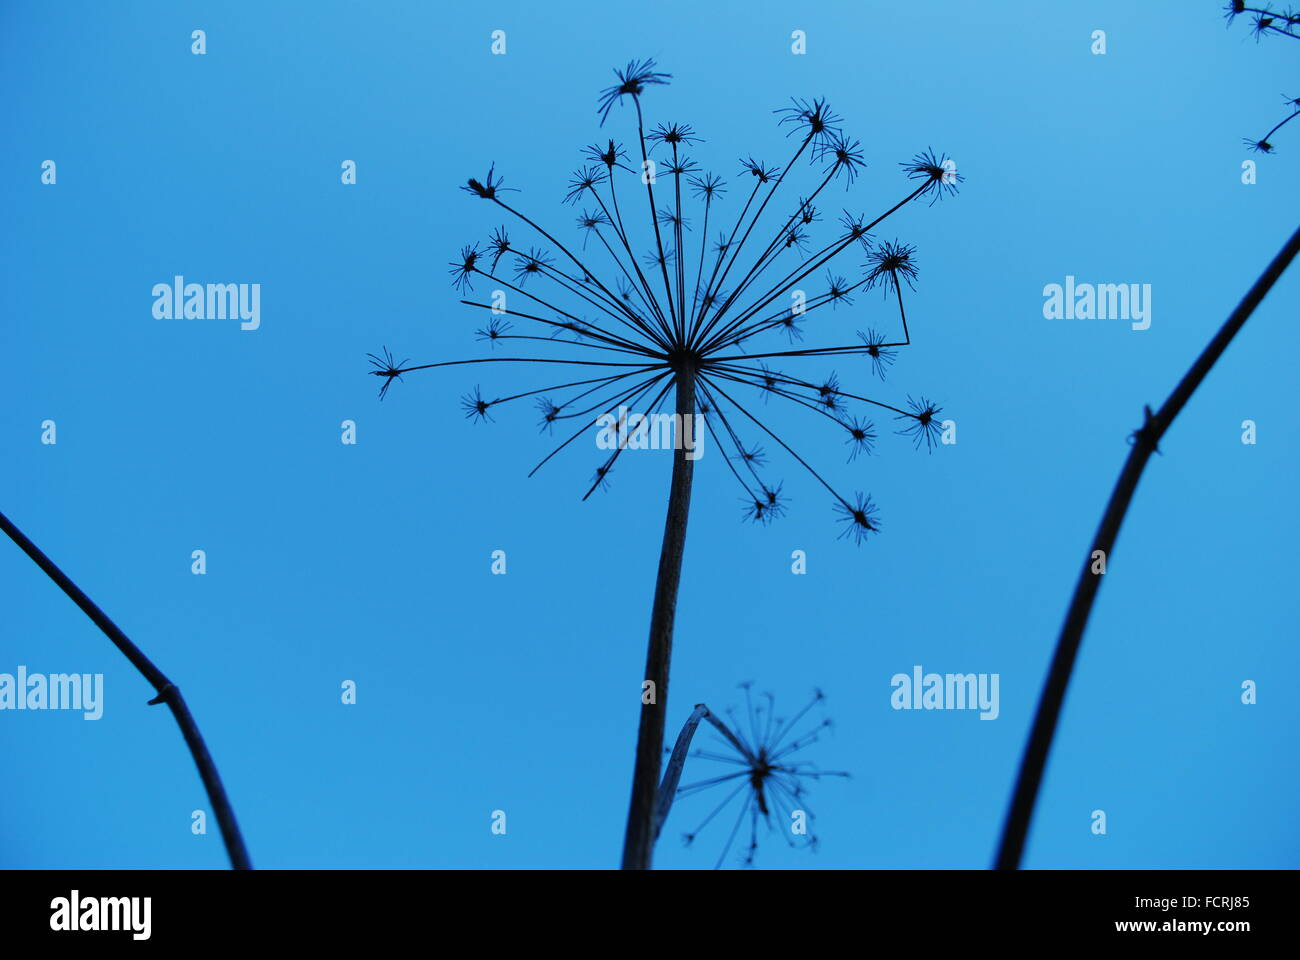 Dried seed pods against a cloudless blue sky - Stock Image